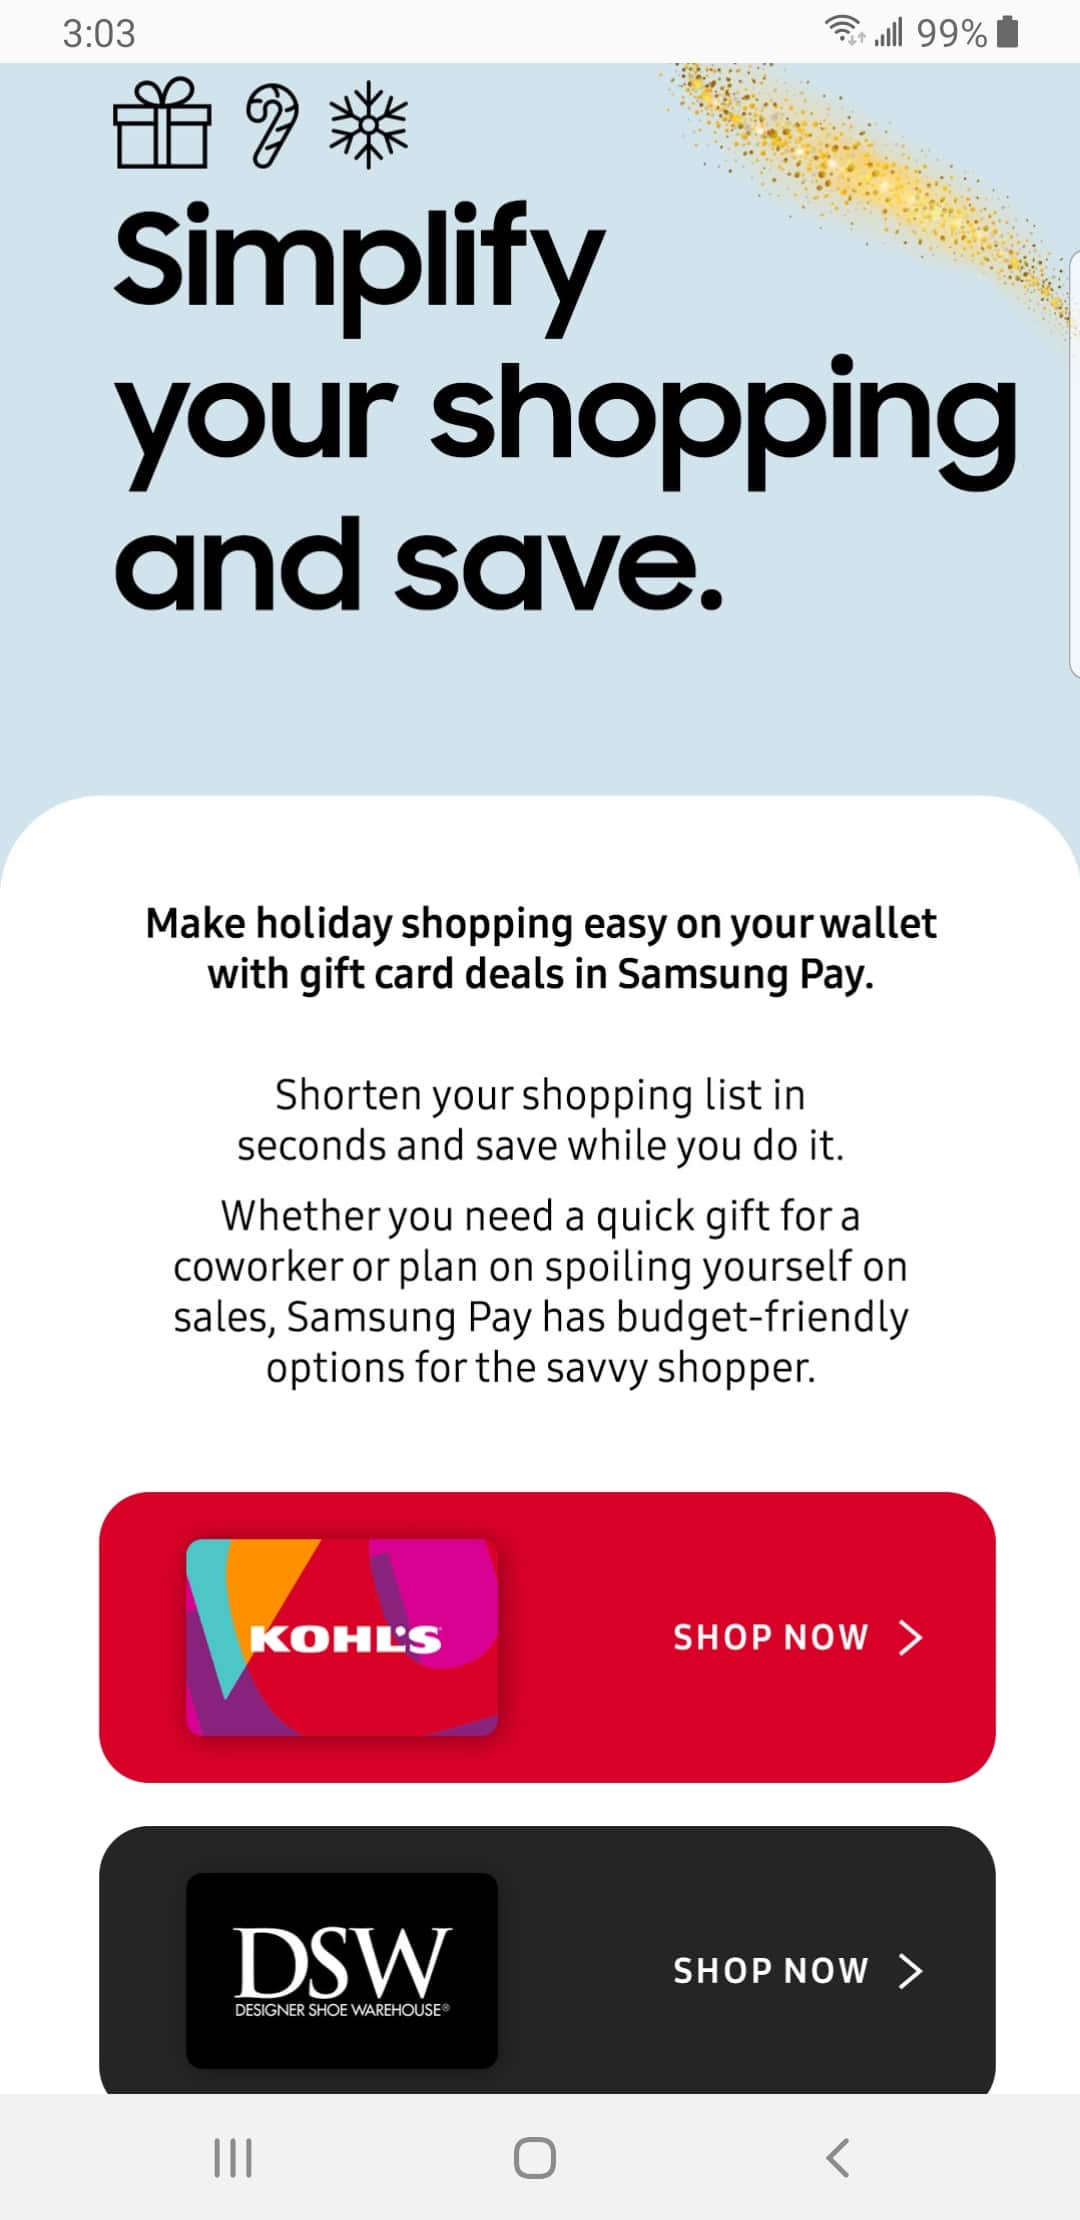 Samsung Pay : Up to 20% off gift cards